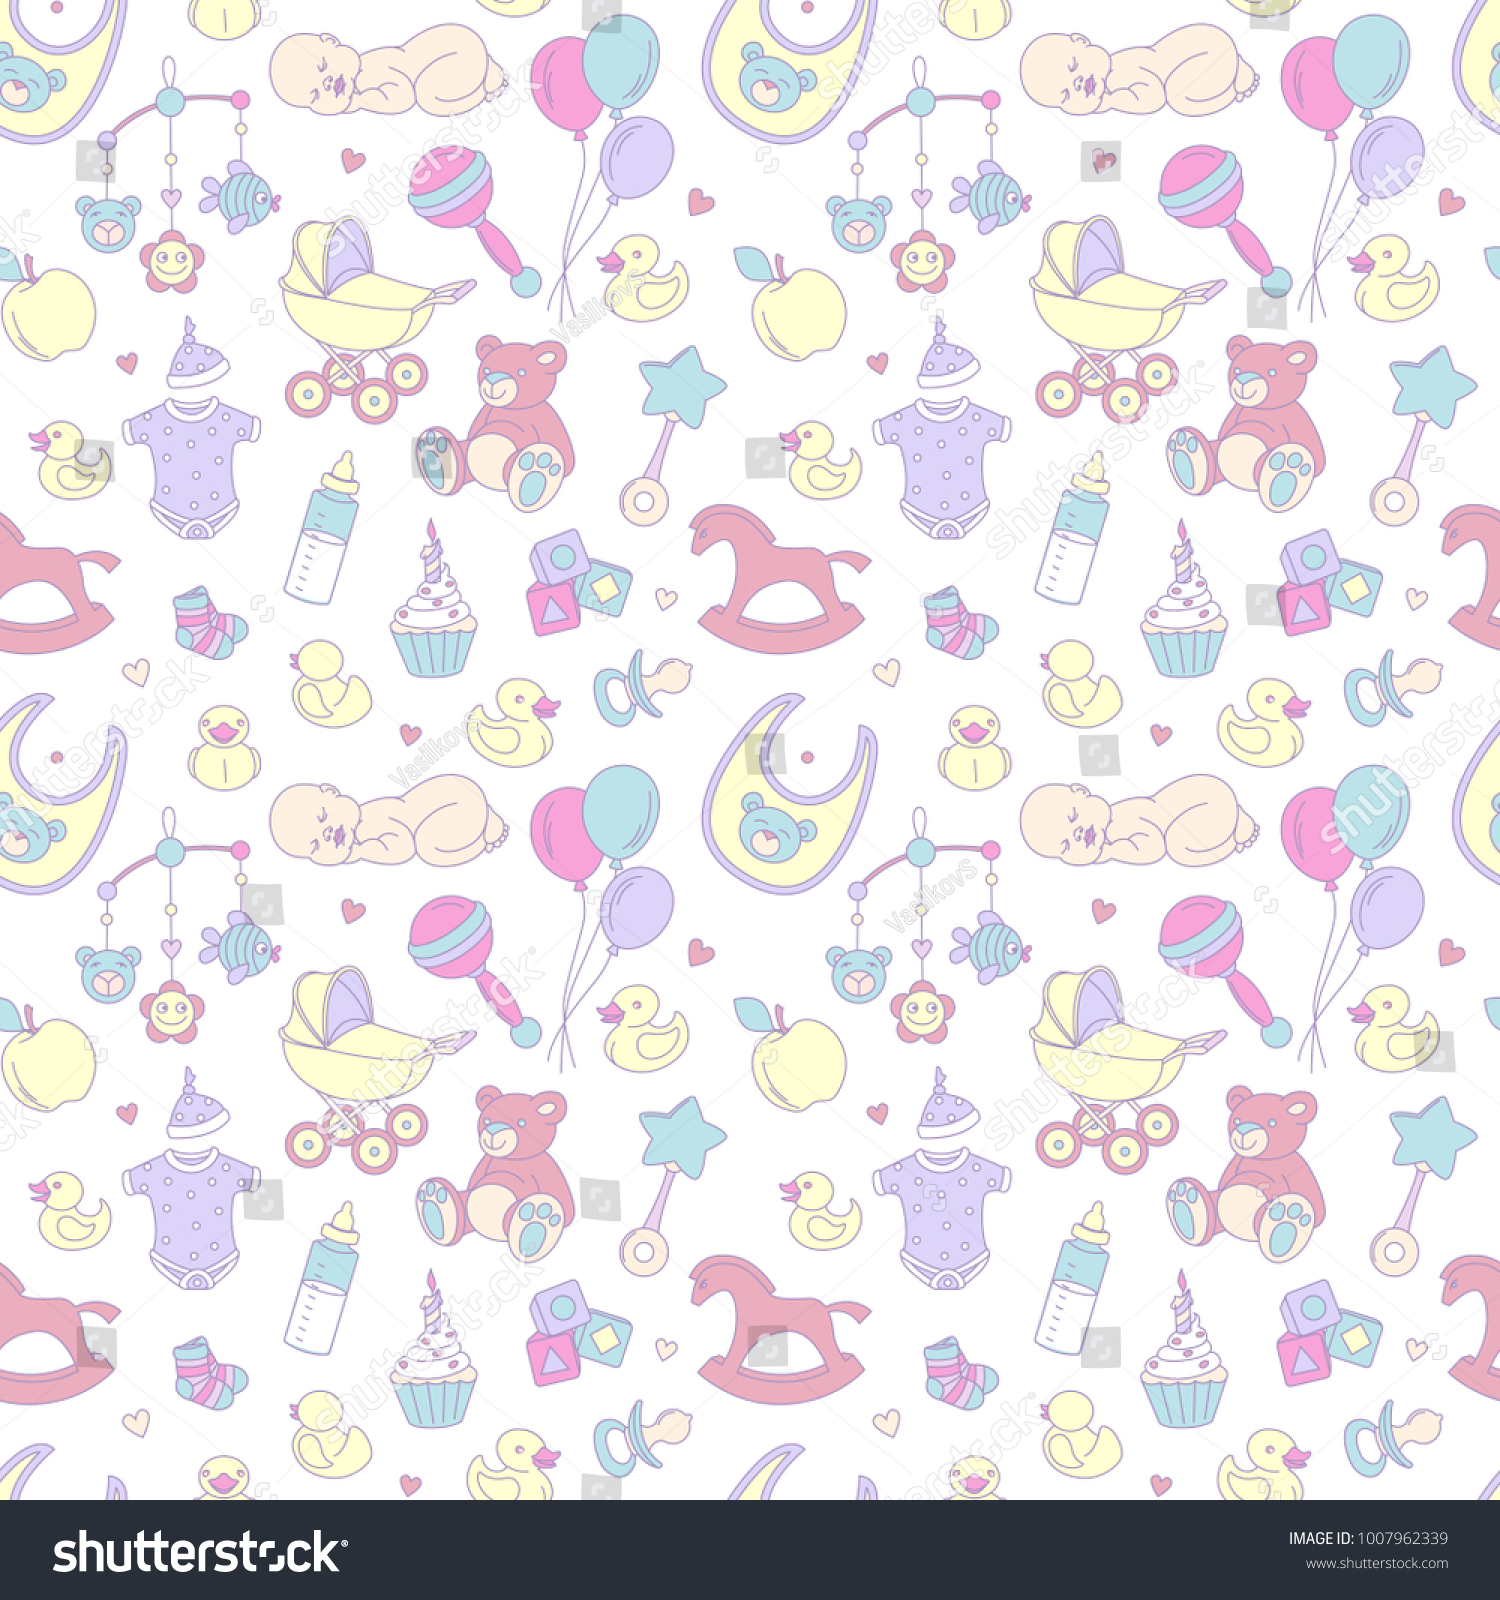 Newborn Baby Shower Seamless Pattern Textile Stock Illustration